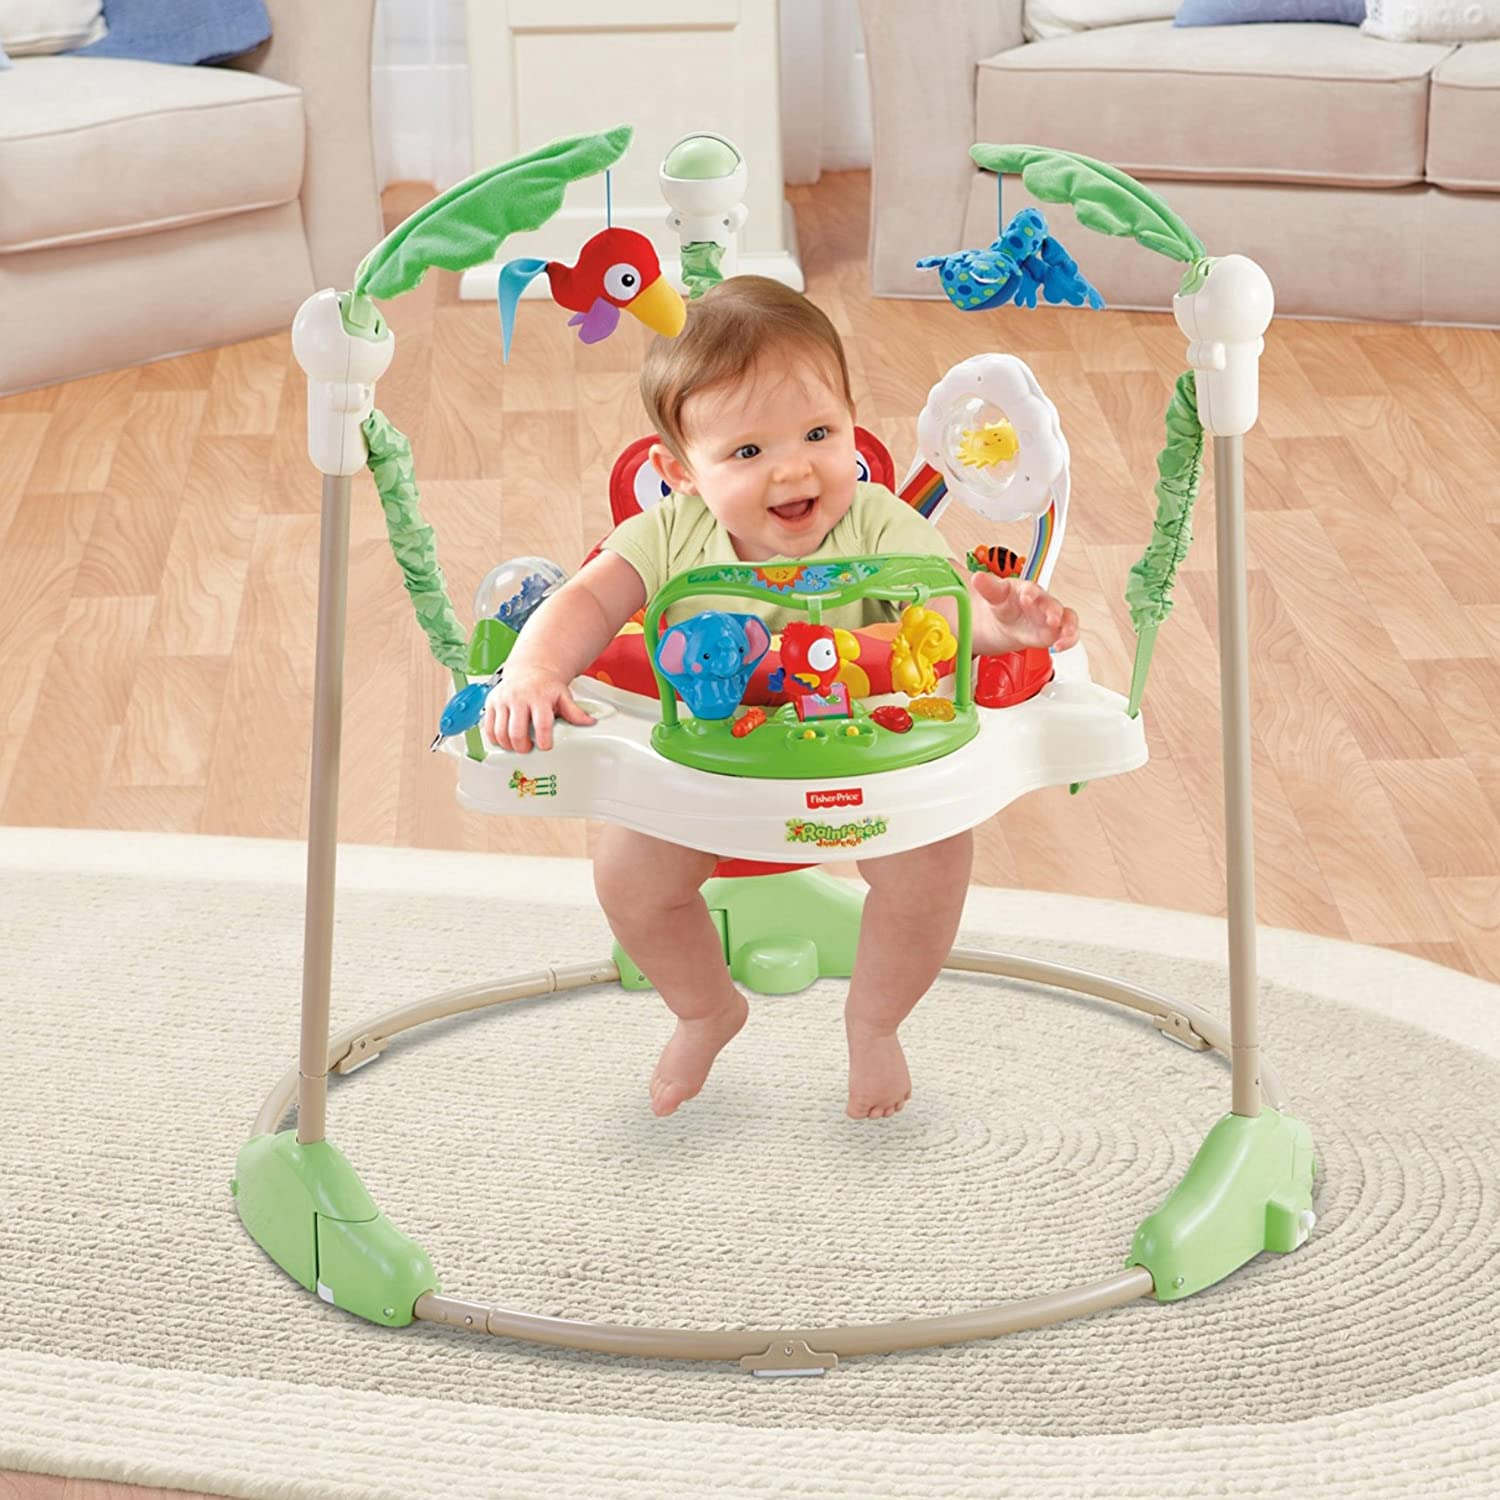 a8b8c9be5a4 Amazon.com   Fisher-Price Rainforest Jumperoo   Infant Bouncers And Rockers    Baby